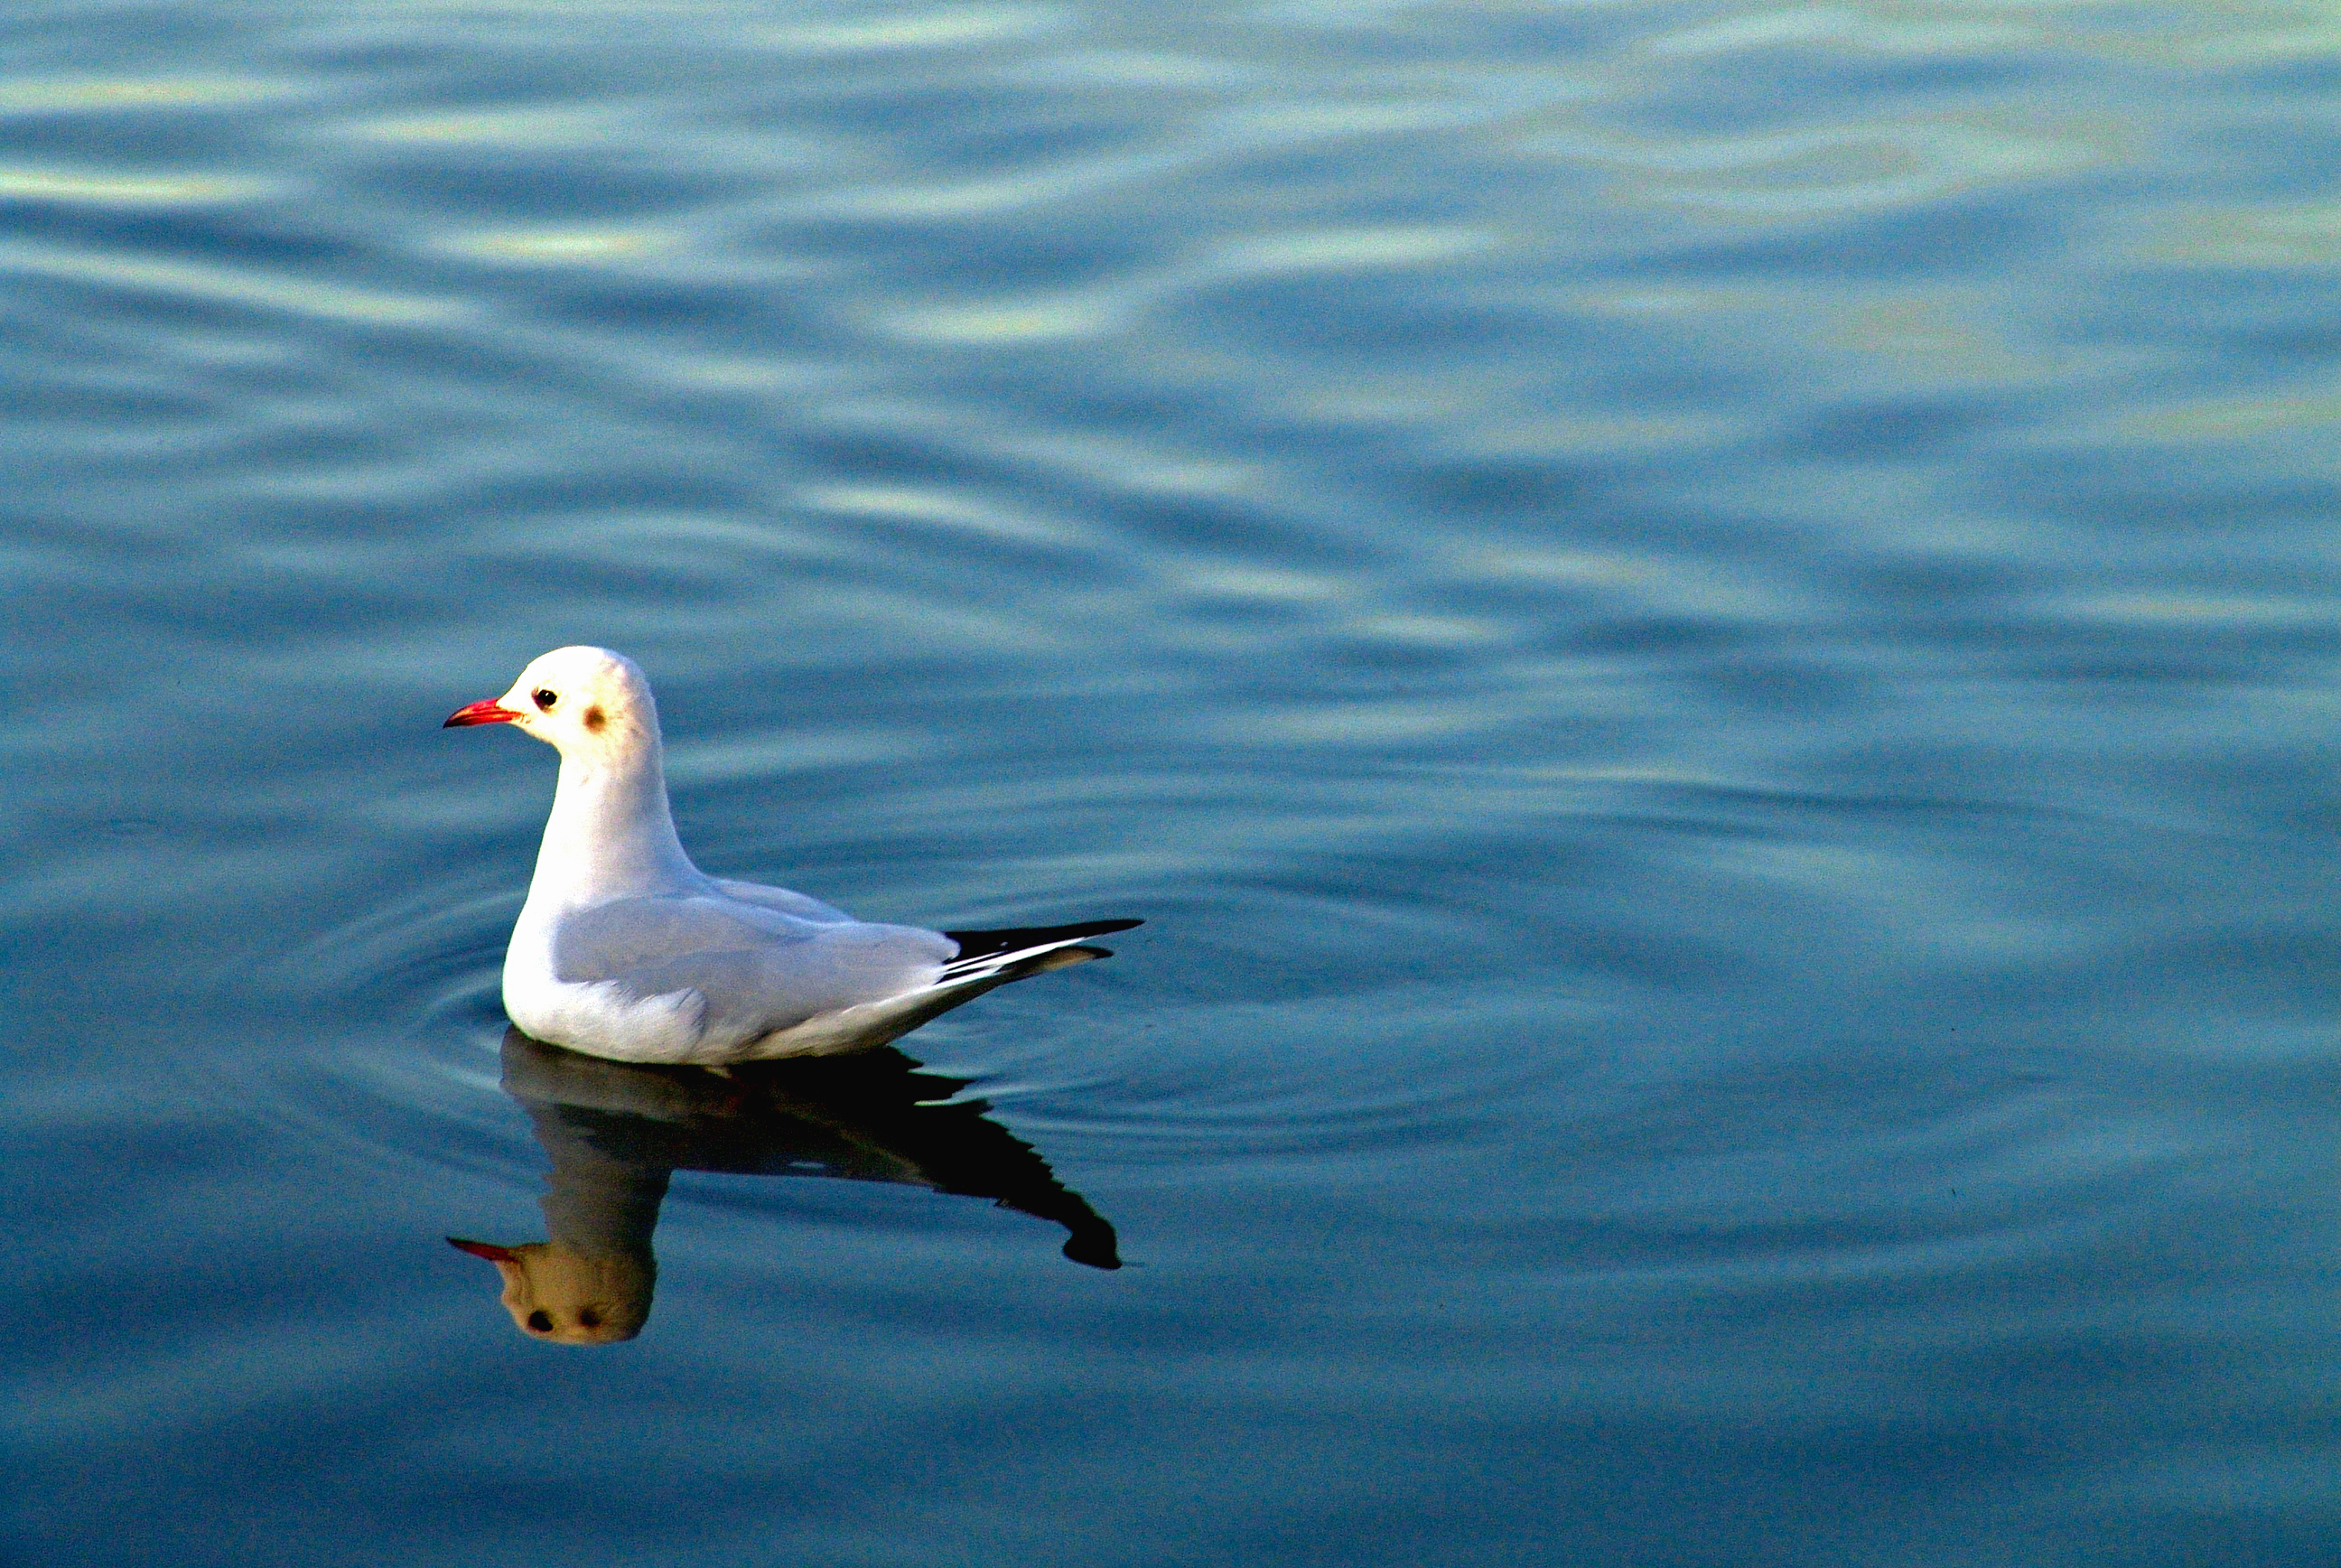 Seagull in a lake photo